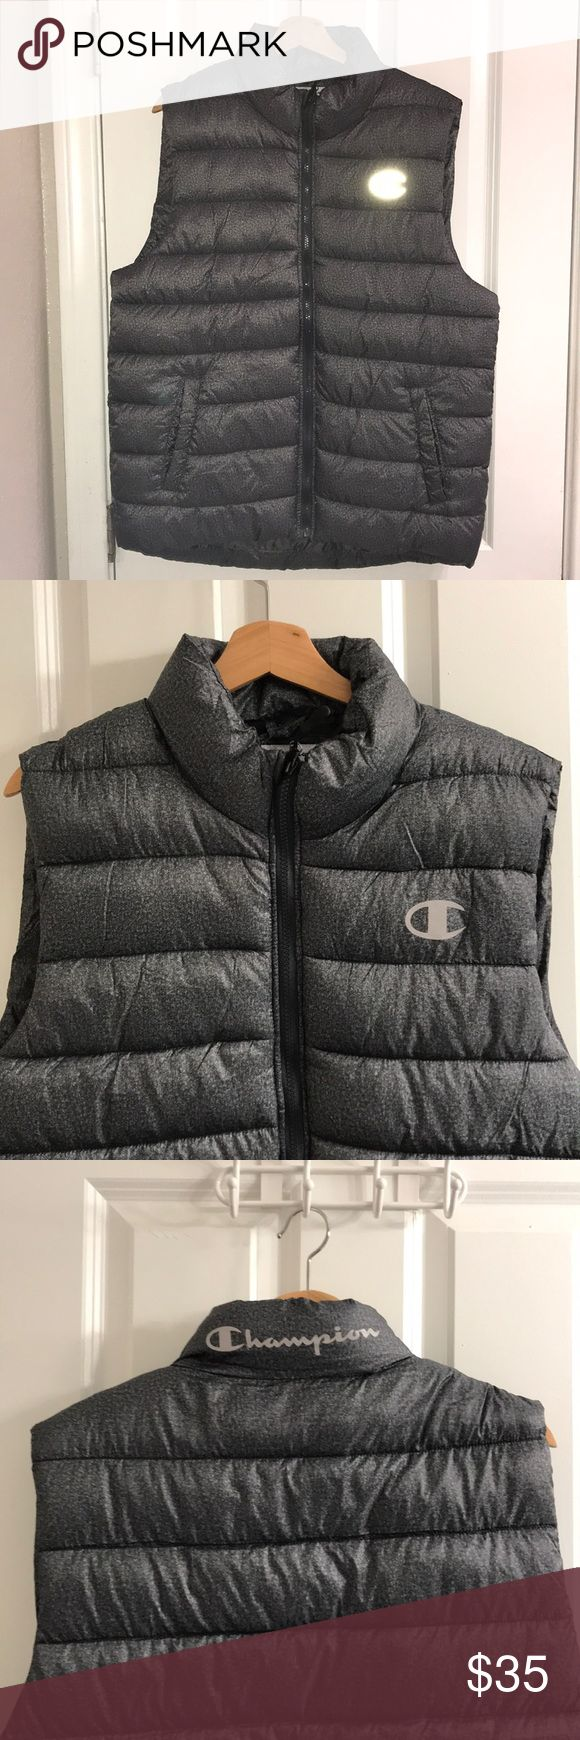 CHAMPION PUFFER VEST JACKET Brand new with tag 🏷 Color